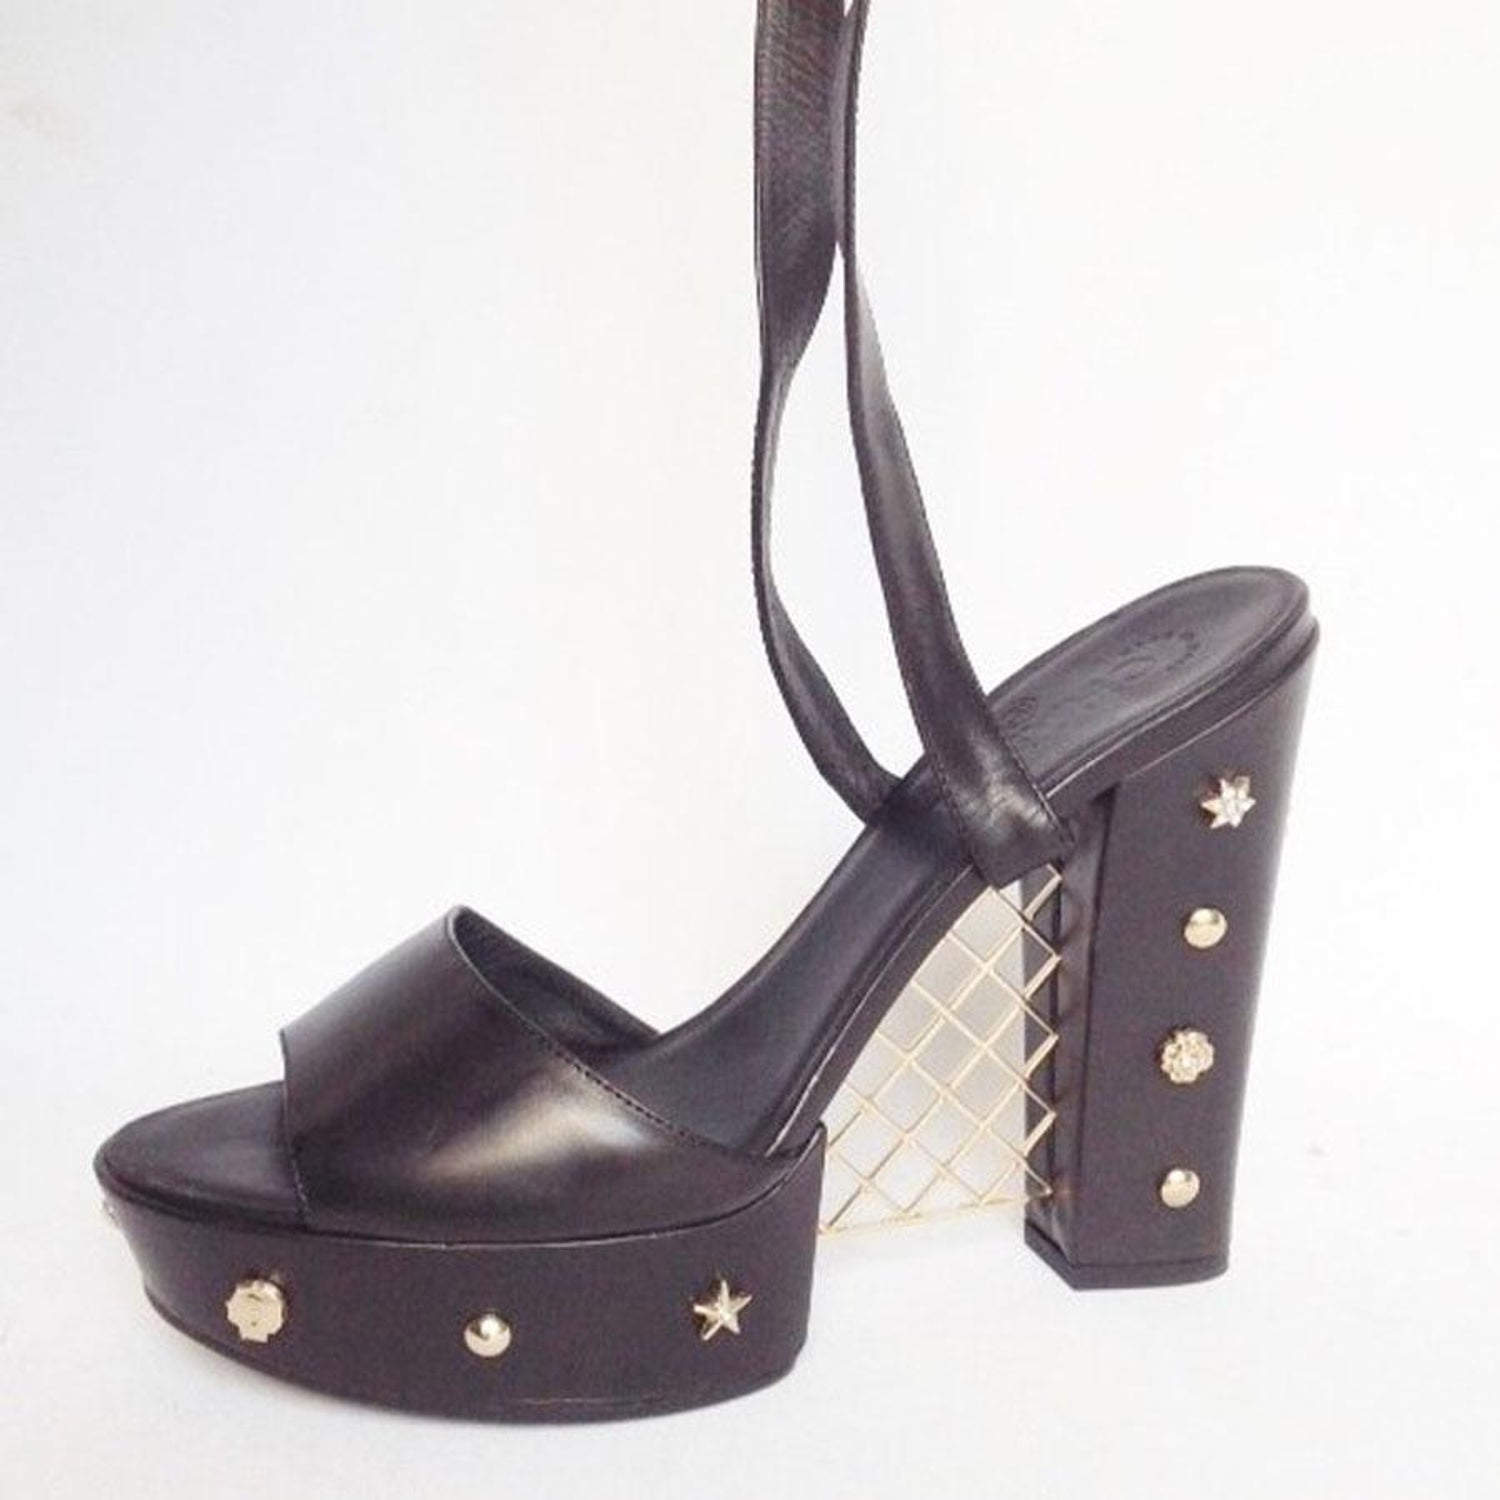 f8969b03a2b Collector CHANEL Platform Sandals in Black Box Leather and Gilt Metal 39.5  For Sale at 1stdibs